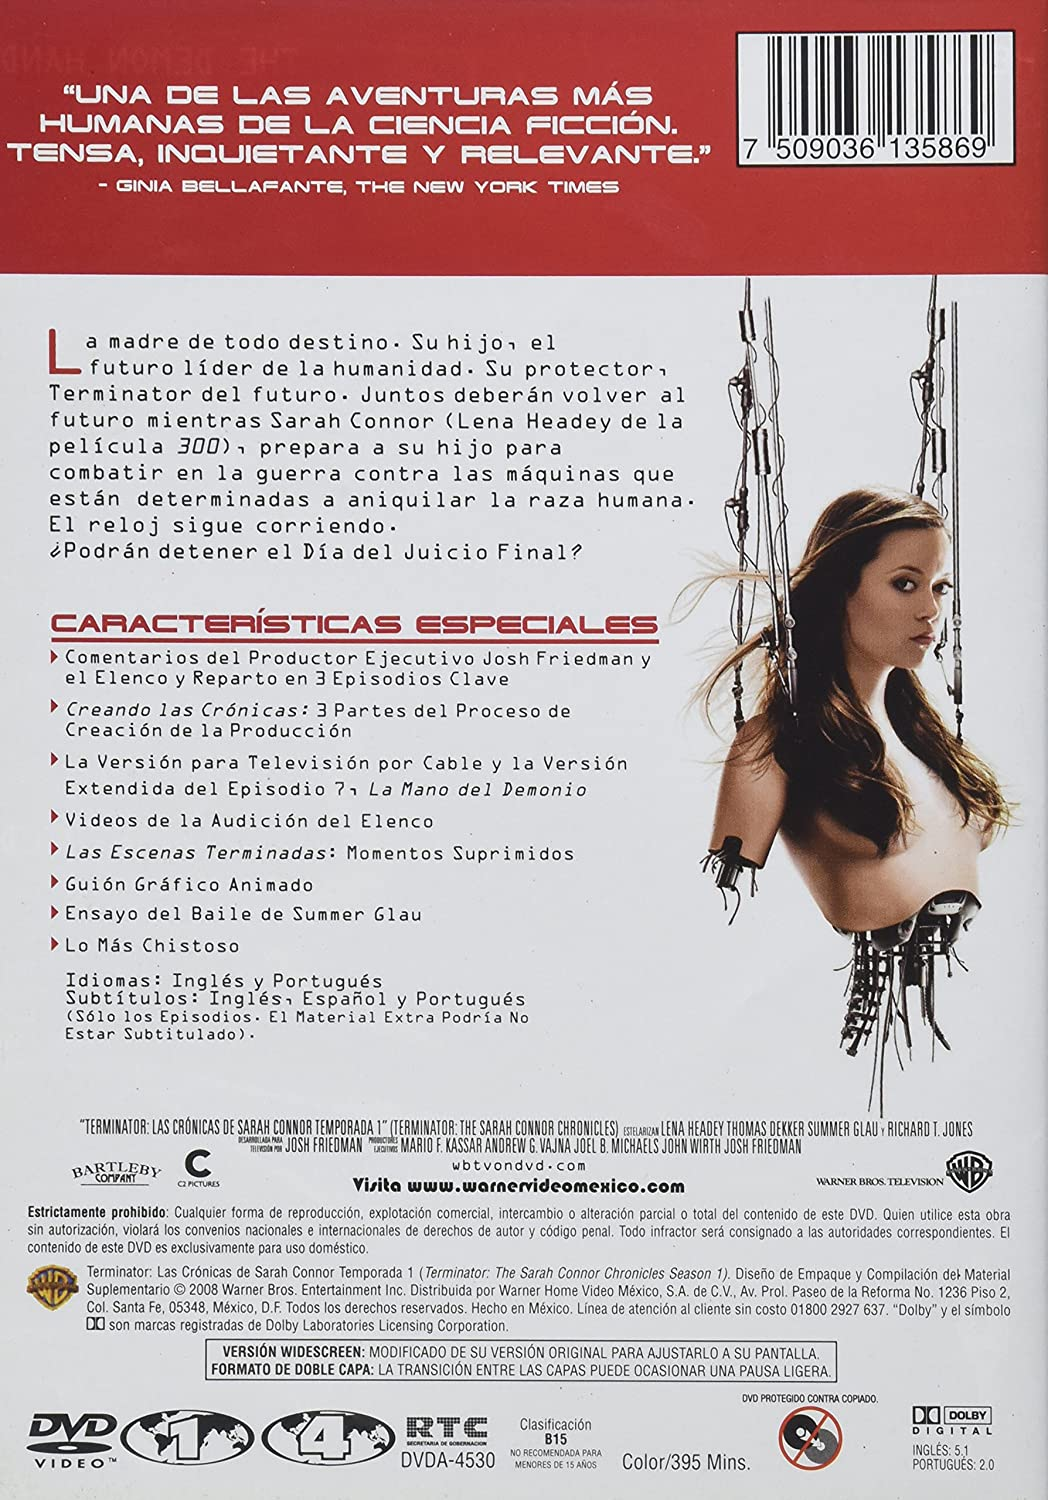 Amazon.com: TERMINATOR. LAS CRONICAS DE SARAH CONNORS / TEMPORADA 1 / DVD: Movies & TV